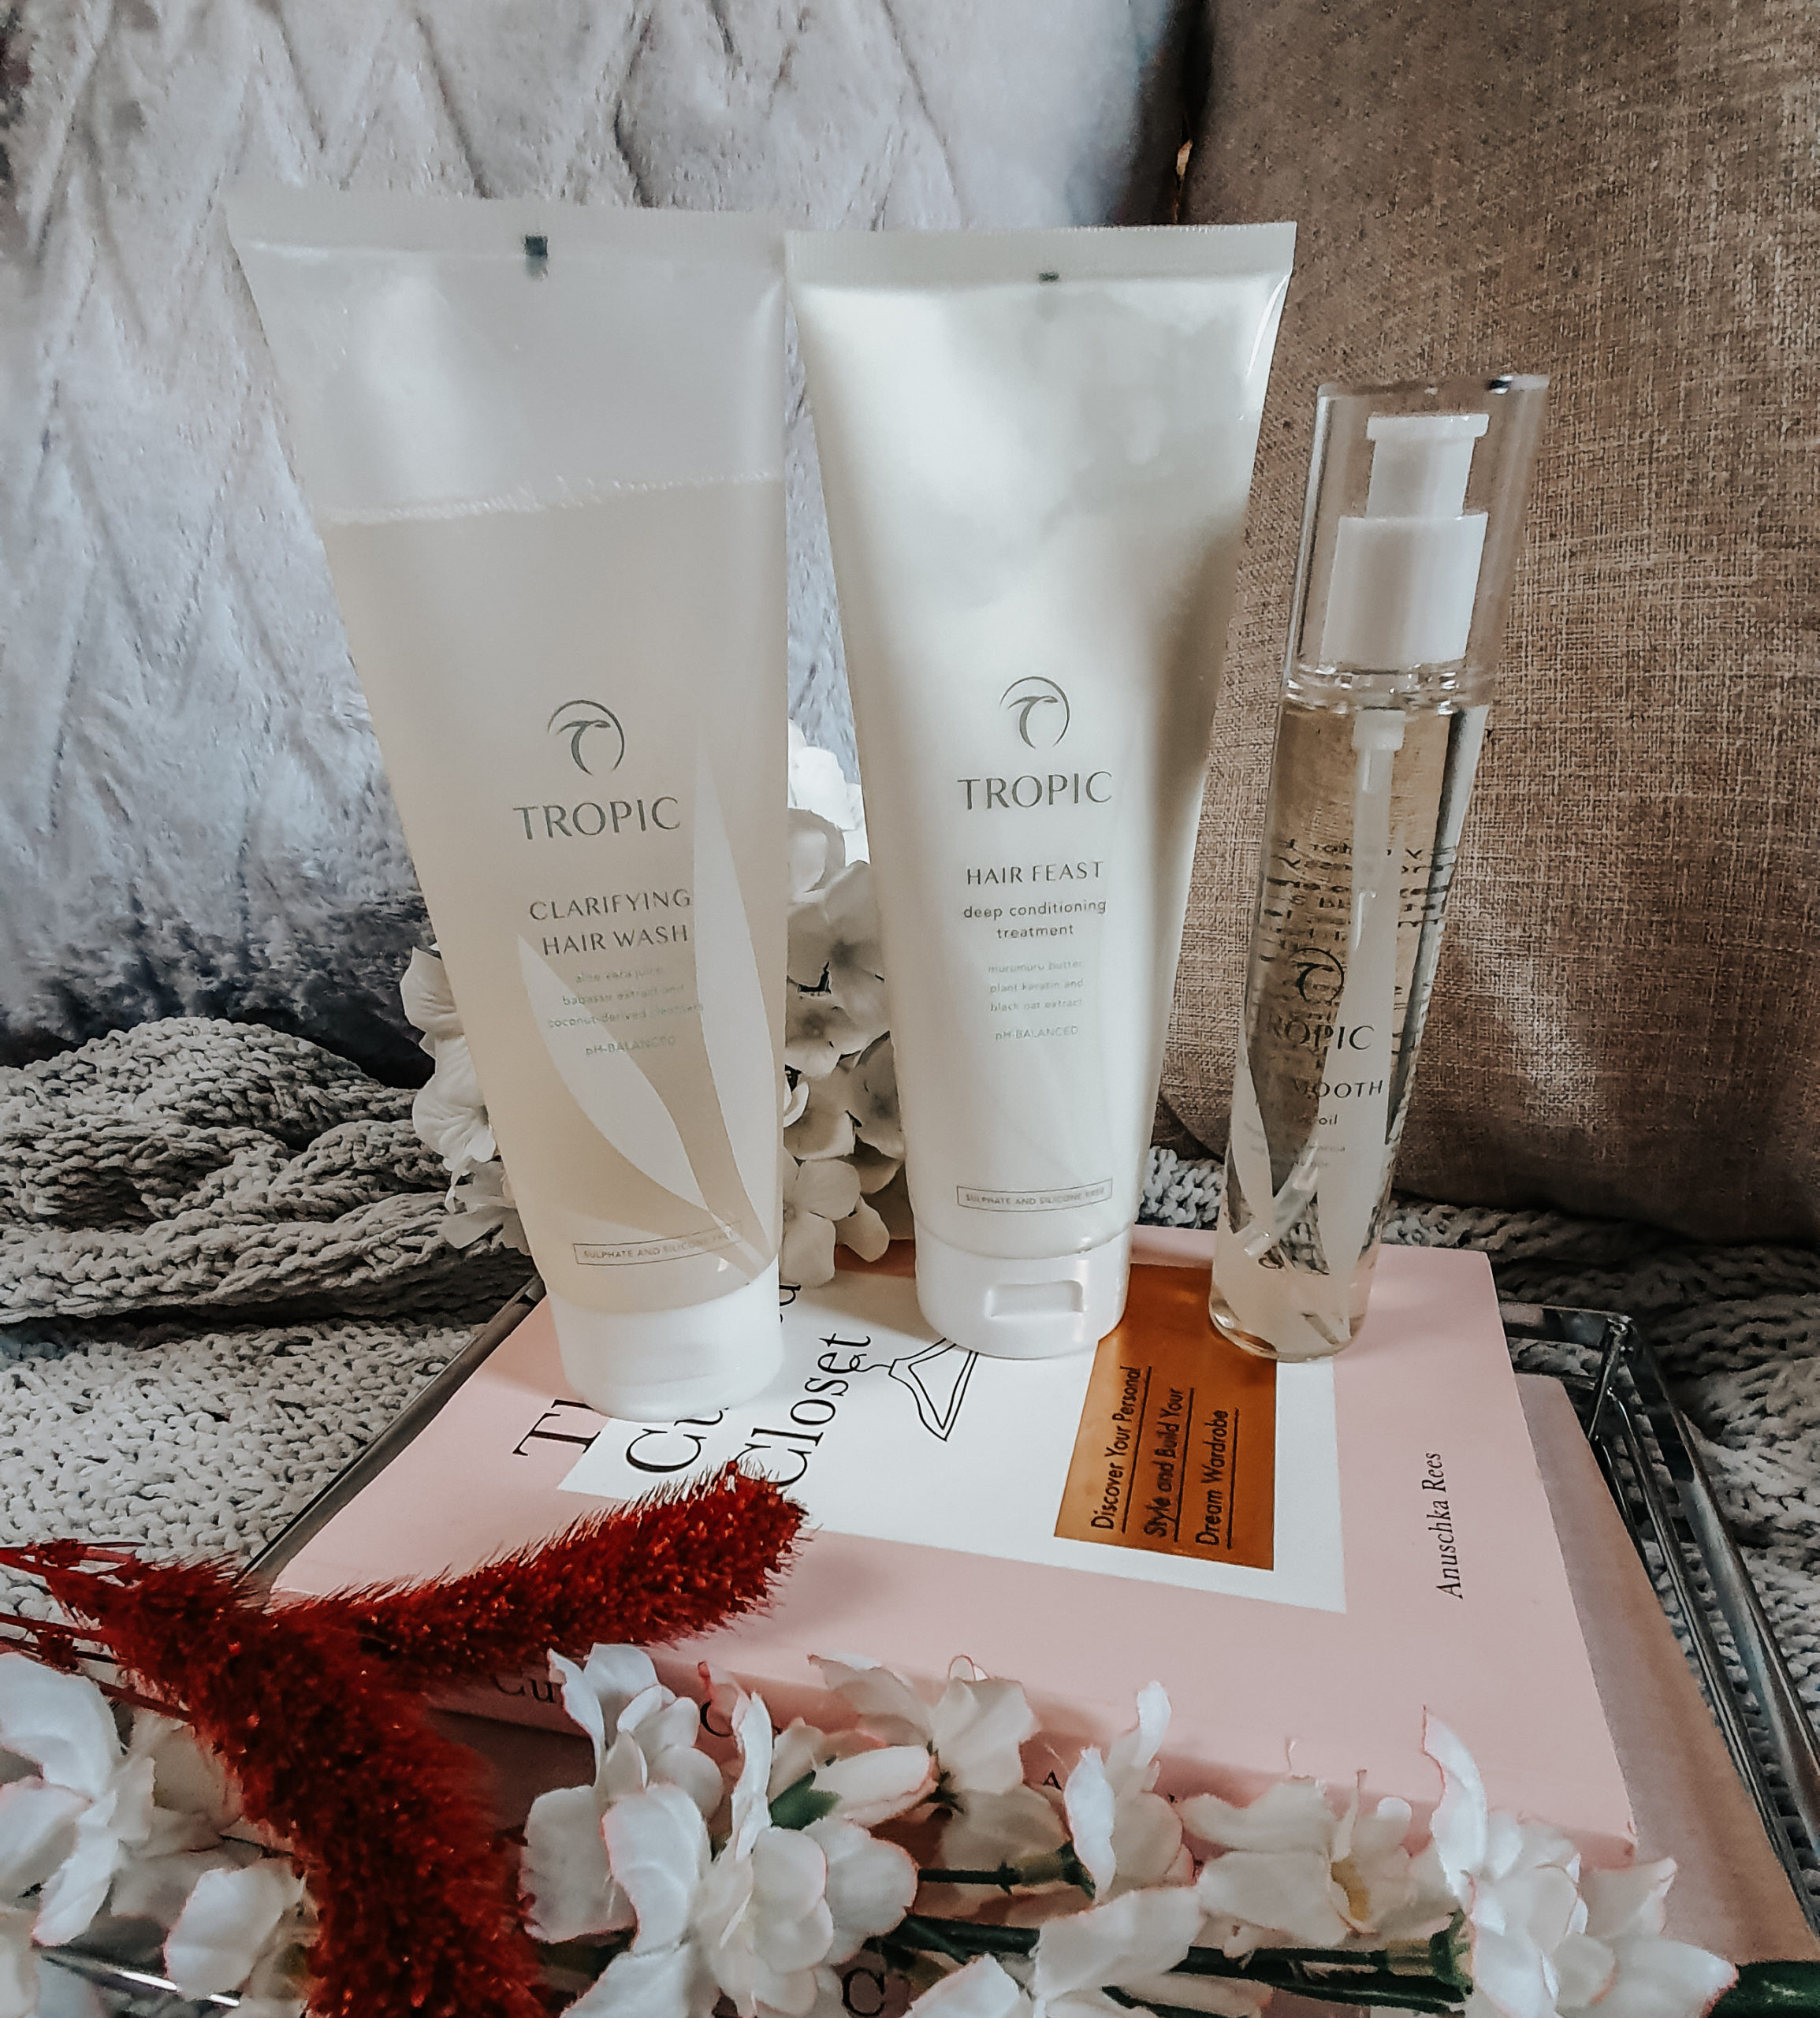 3 Haircare Products To Try From Tropic Skincare The Curvaceous Vegan